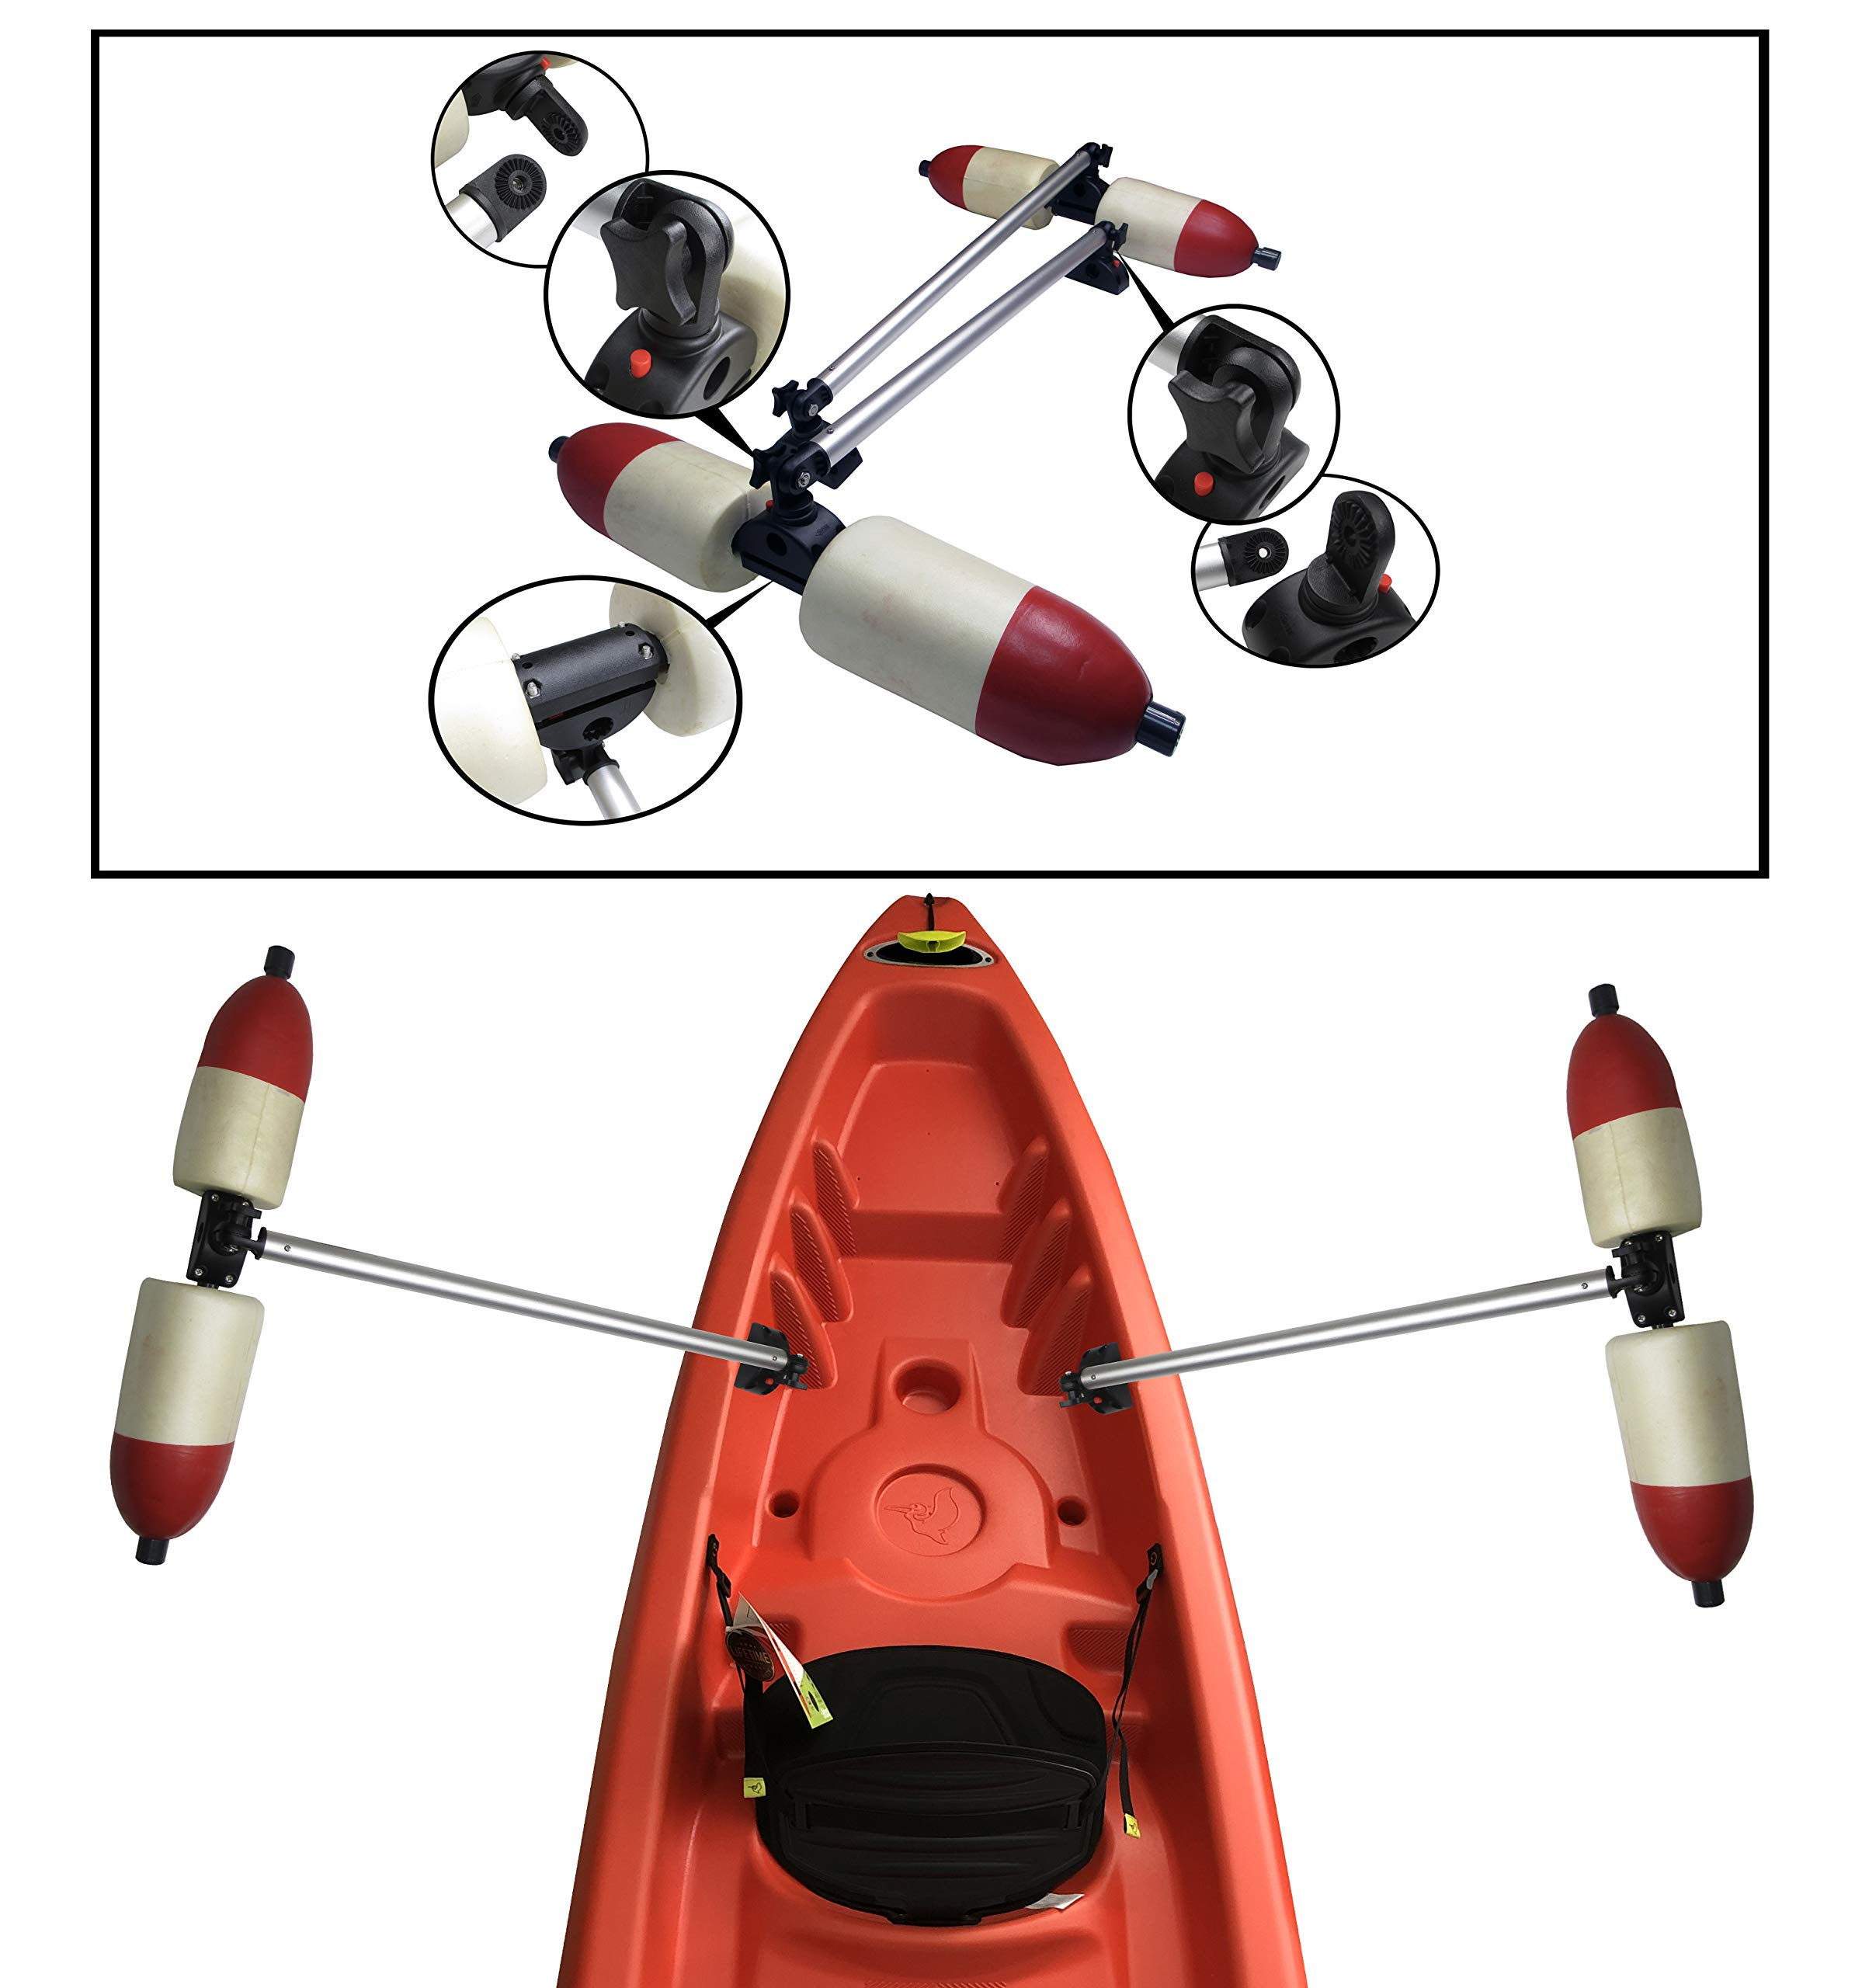 Pactrade Marine Boat Kayak Canoe PVC Outrigger Arms Stabilizer System Fishing by Pactrade Marine